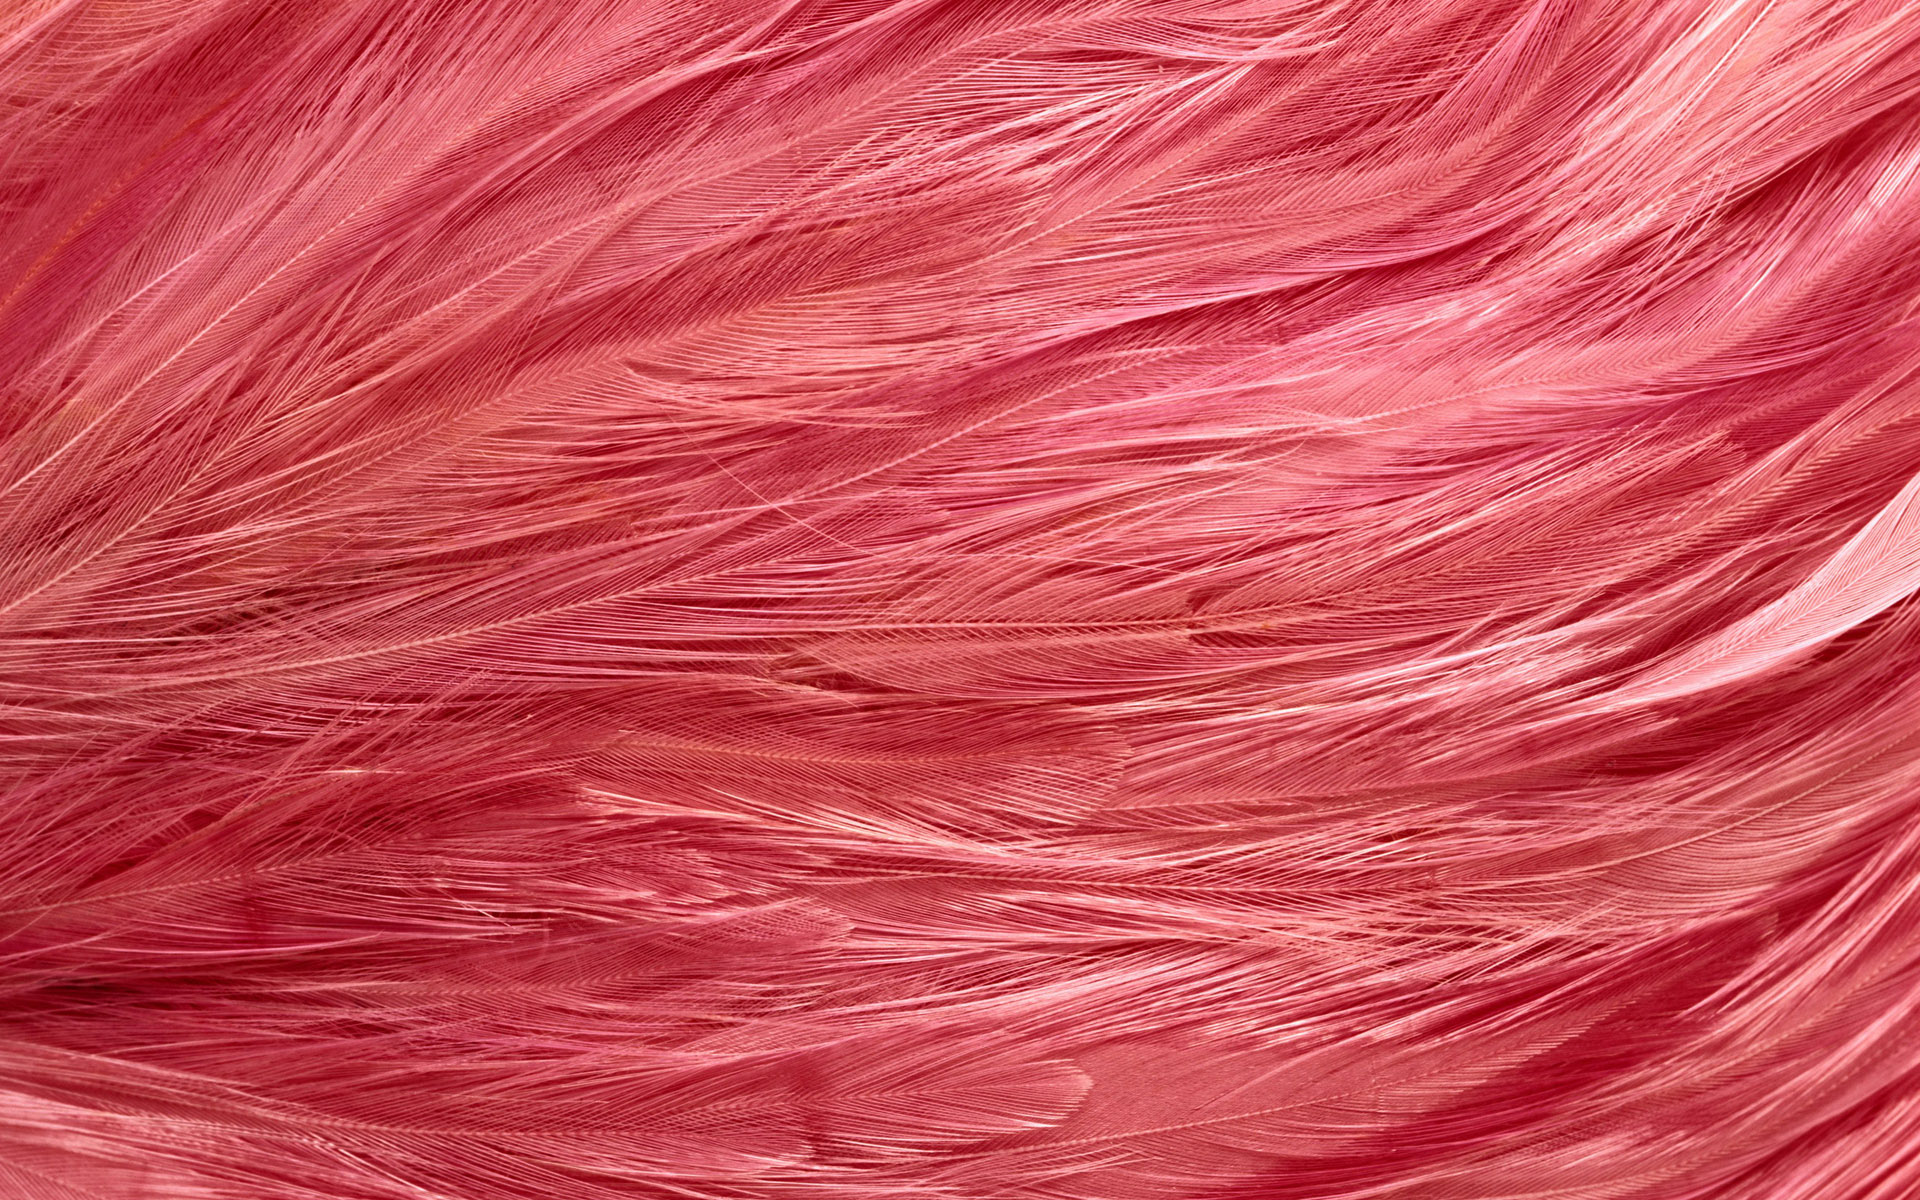 , texture feather, download background, photo, image, pink feather background texture